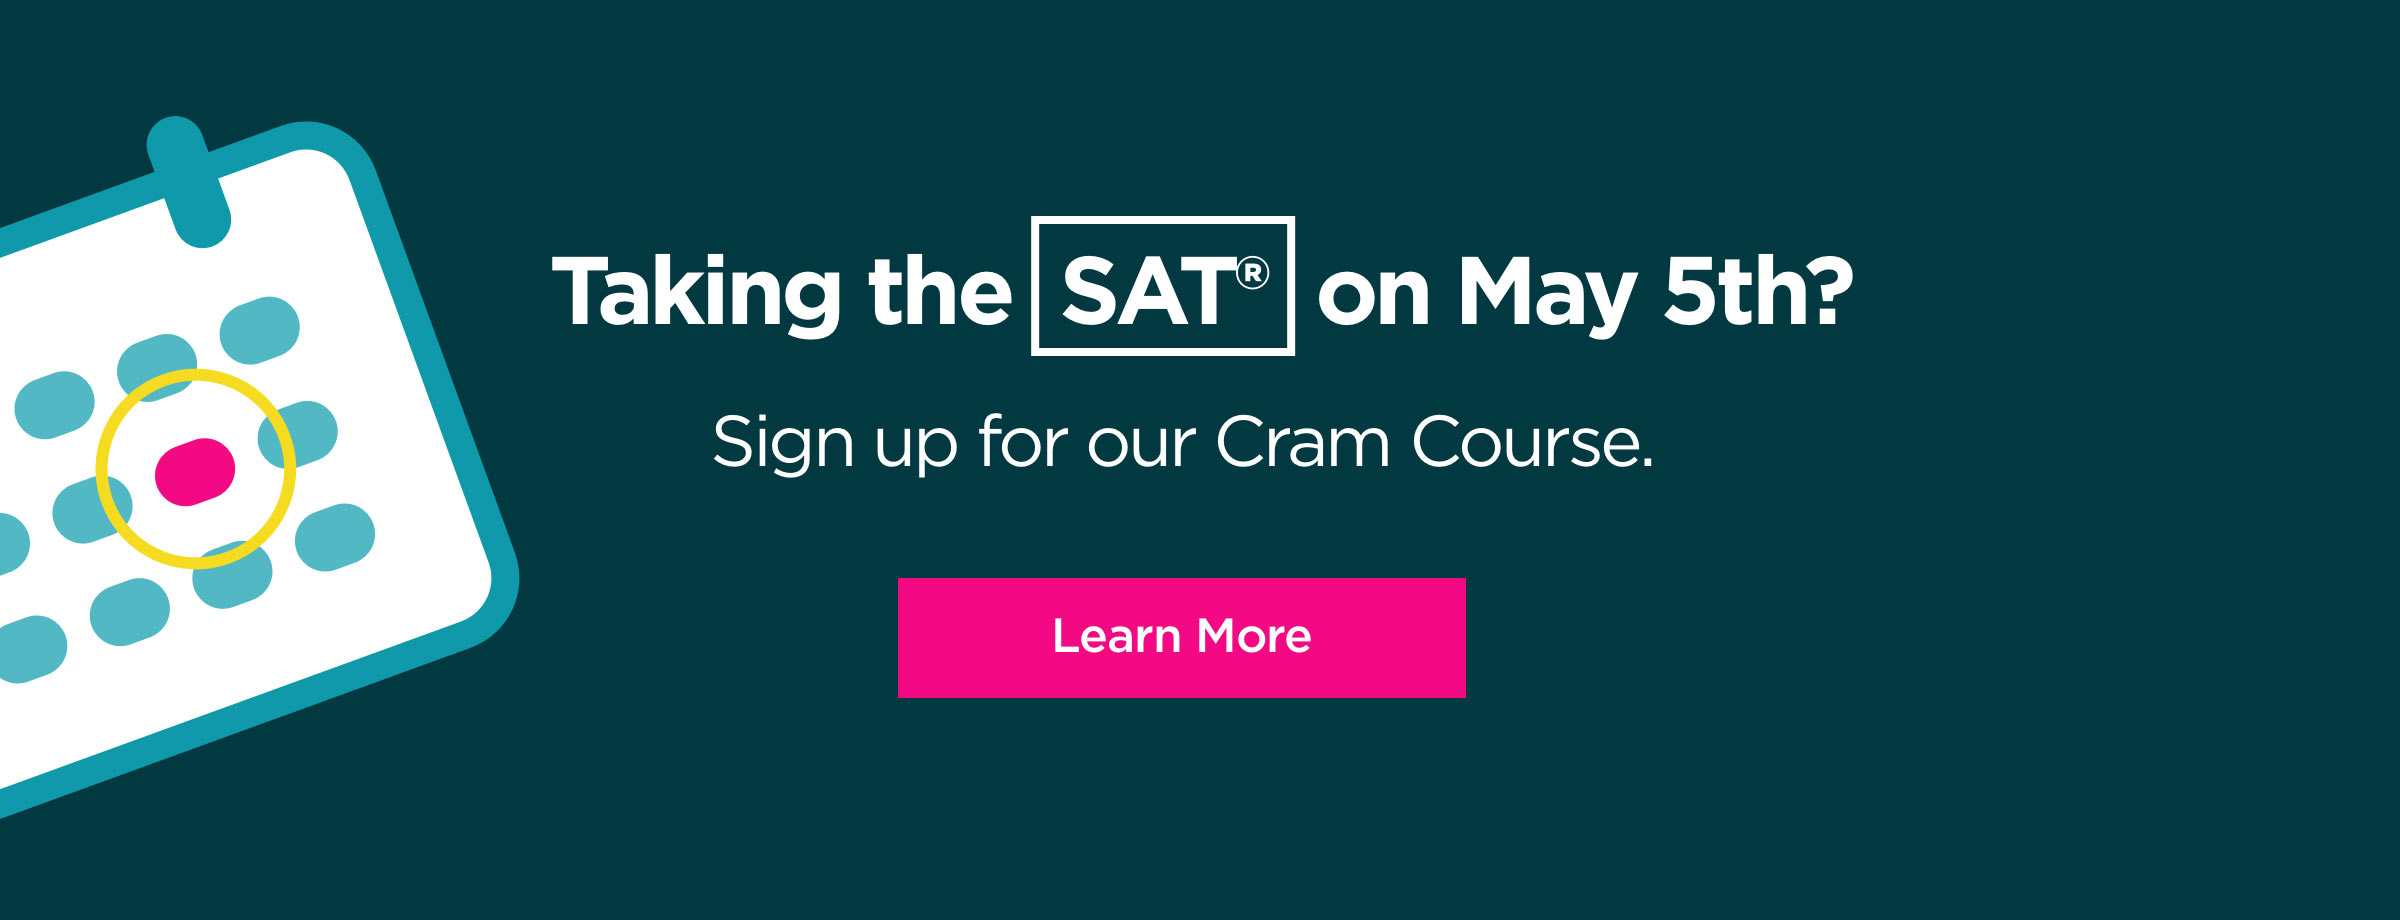 Test prep online tutoring college grad admissions the sat cram course malvernweather Gallery